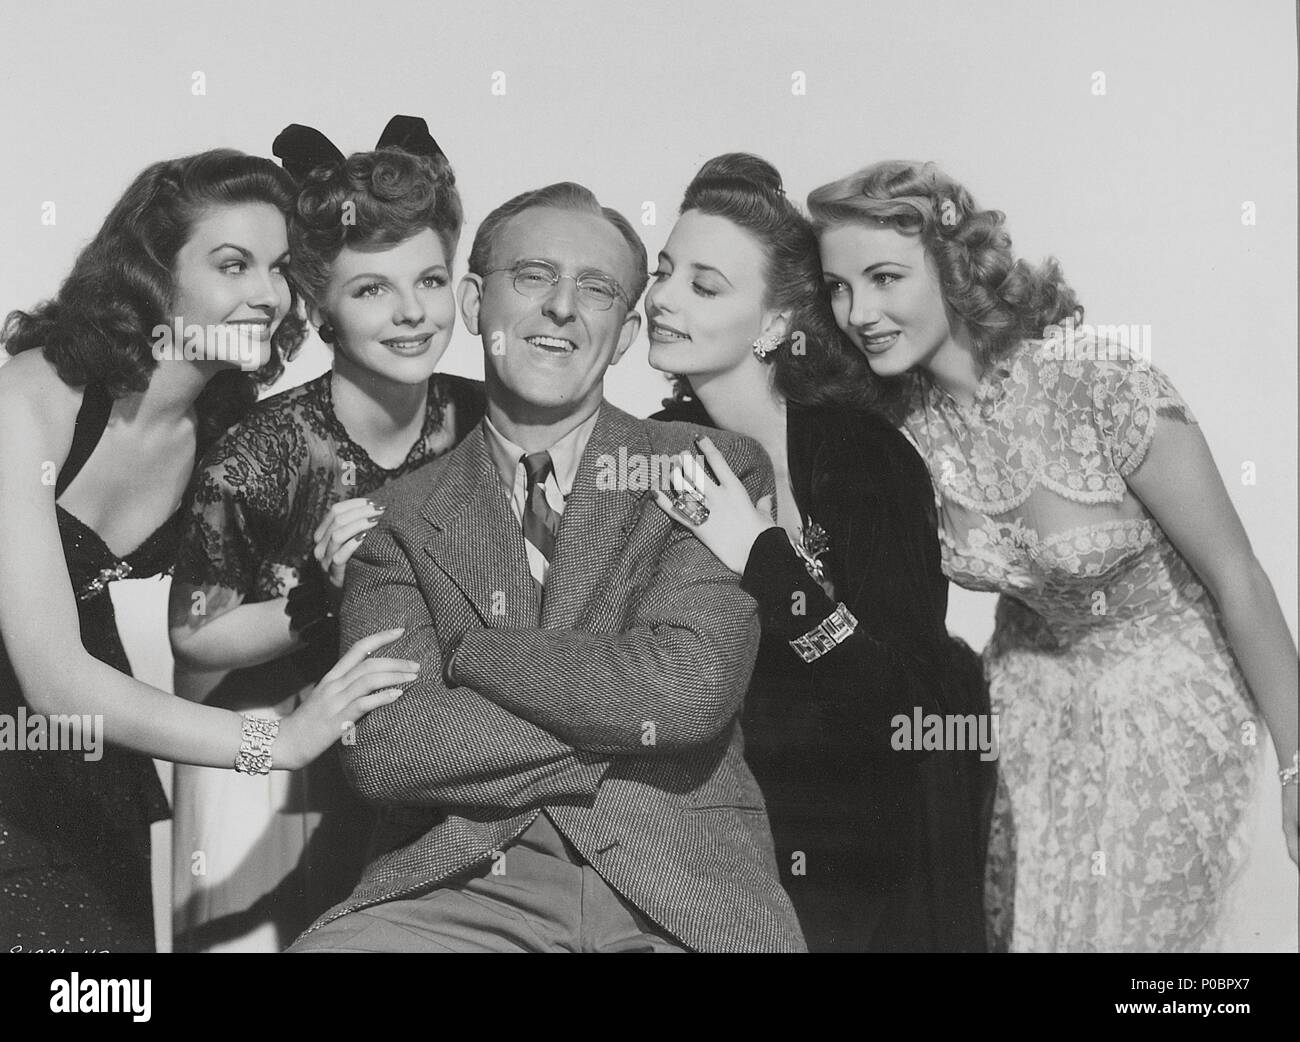 Original Film Title: SWING FEVER.  English Title: RIGHT ABOUT FACE.  Film Director: TIM WHELAN.  Year: 1943.  Stars: KAY KYSER. Credit: M.G.M / Album - Stock Image